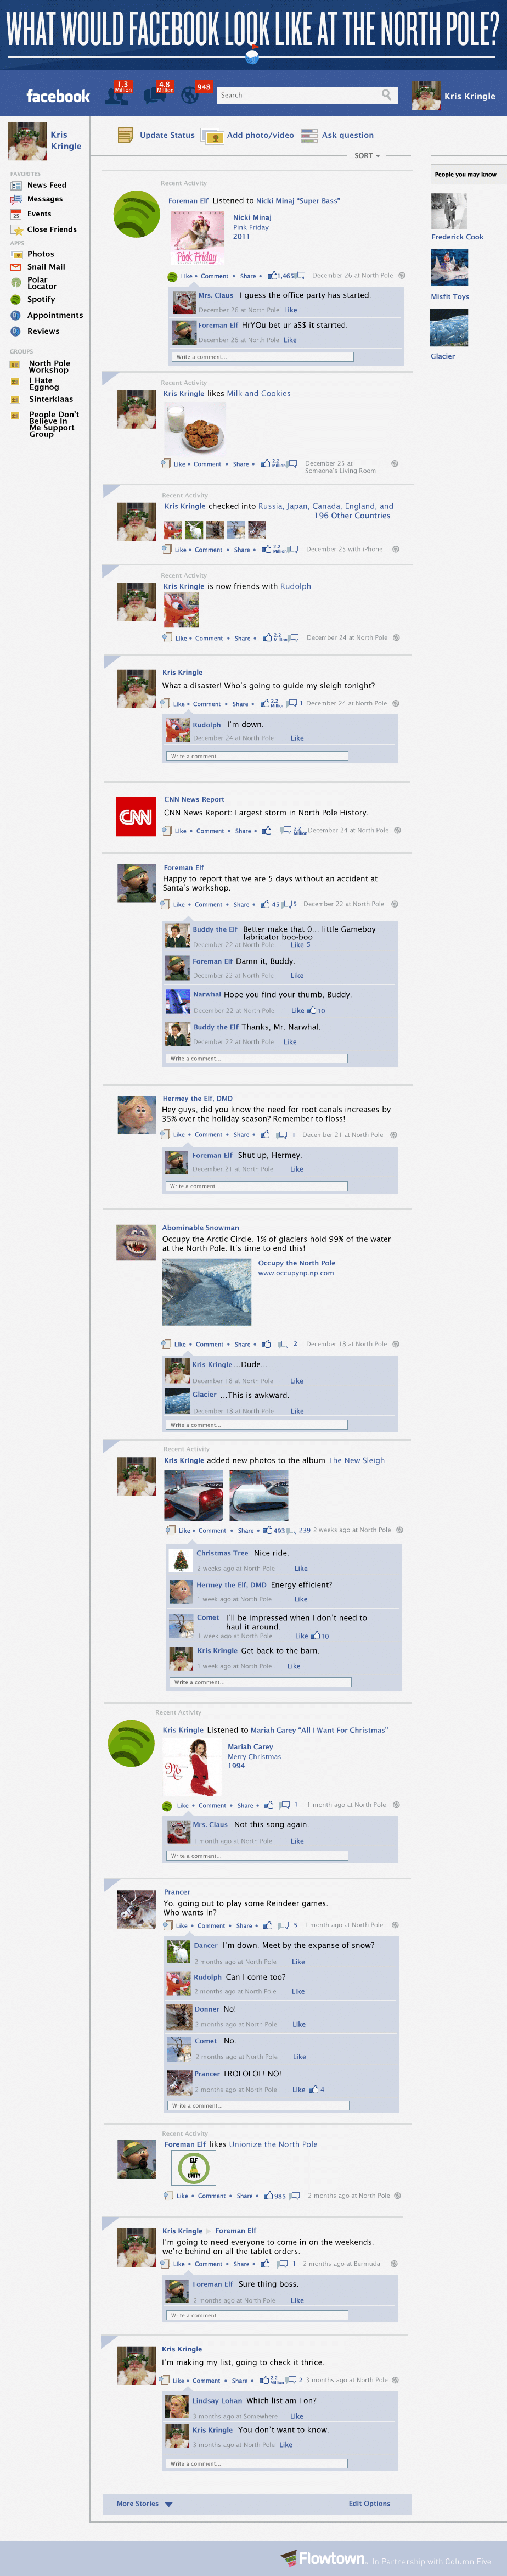 What Facebook Would Look Like At The North Pole